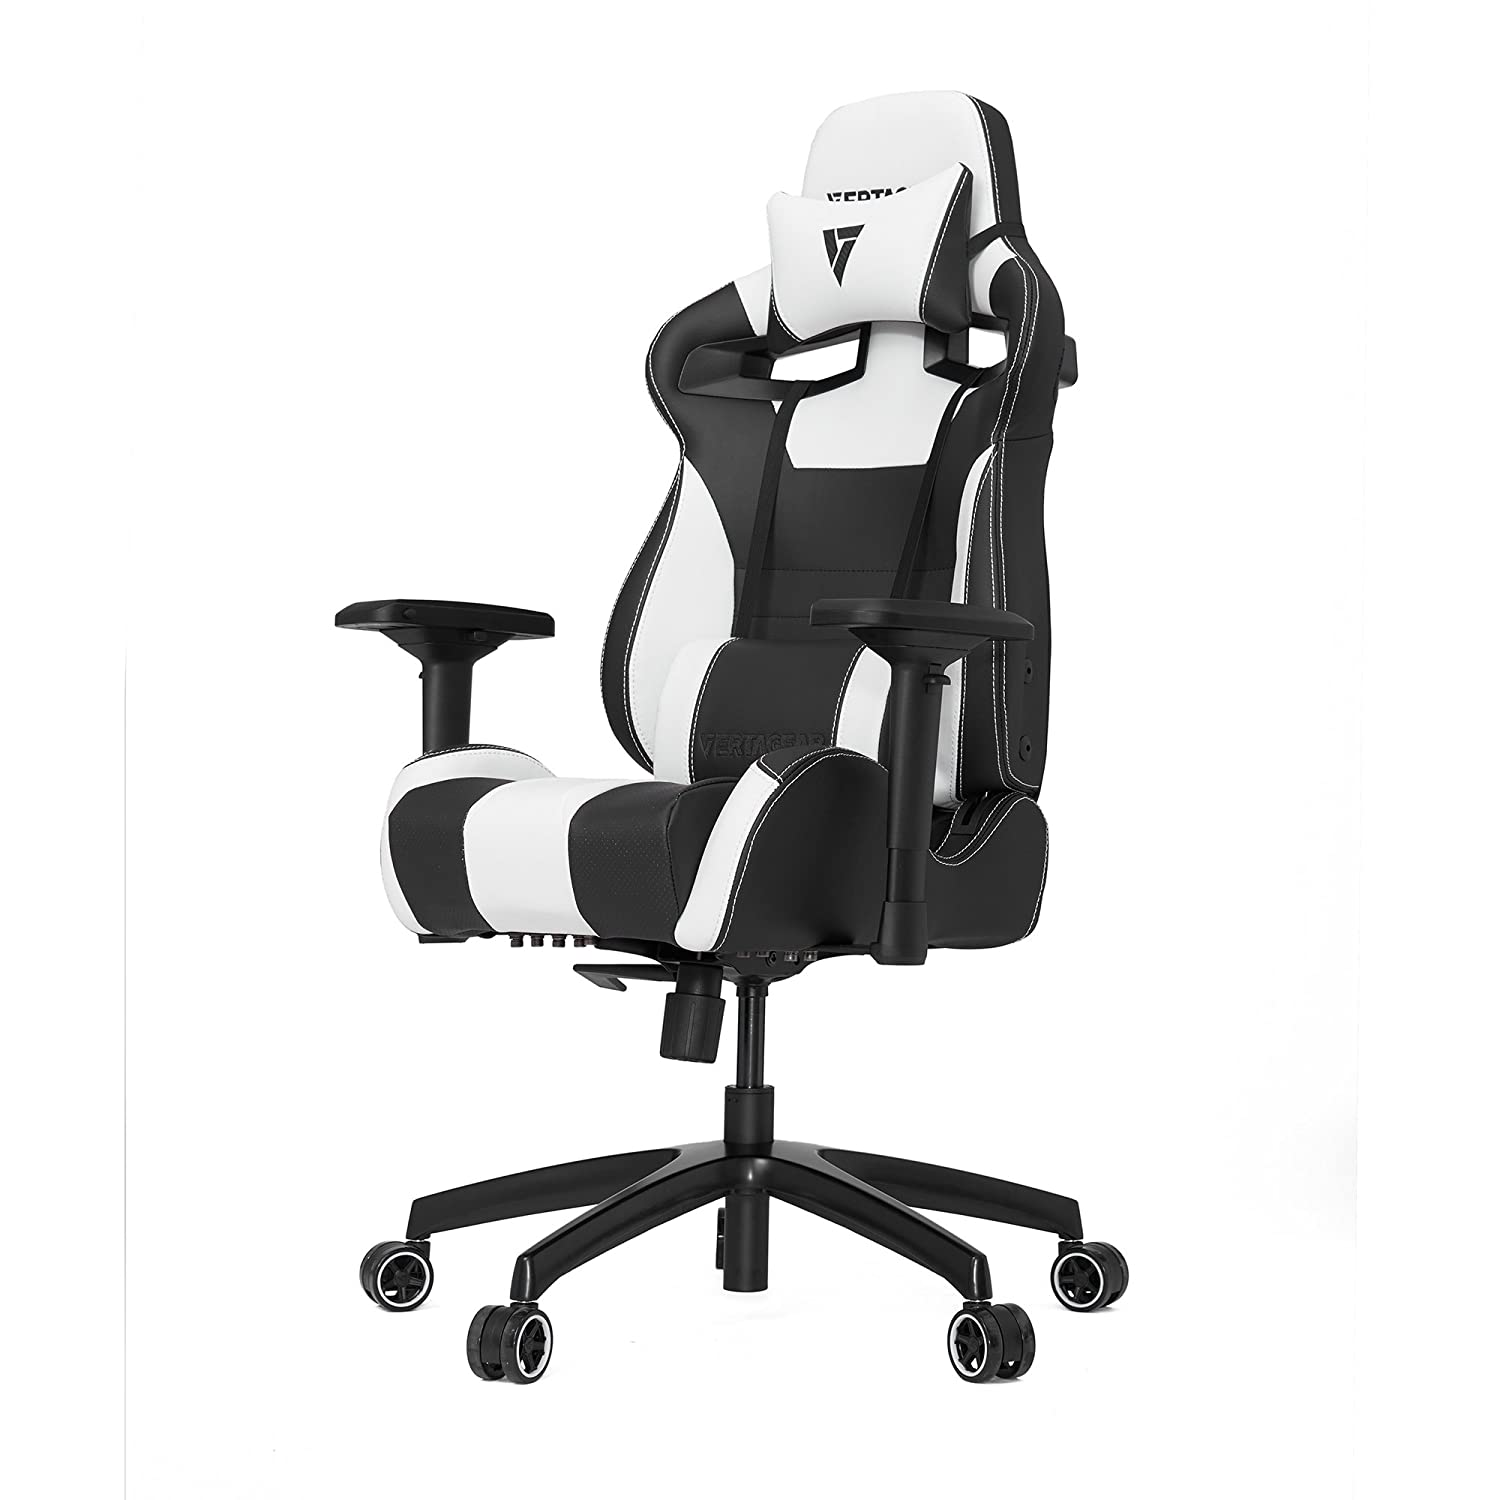 Картинки по запросу Vertagear Racing Series Gaming Chair SL4000